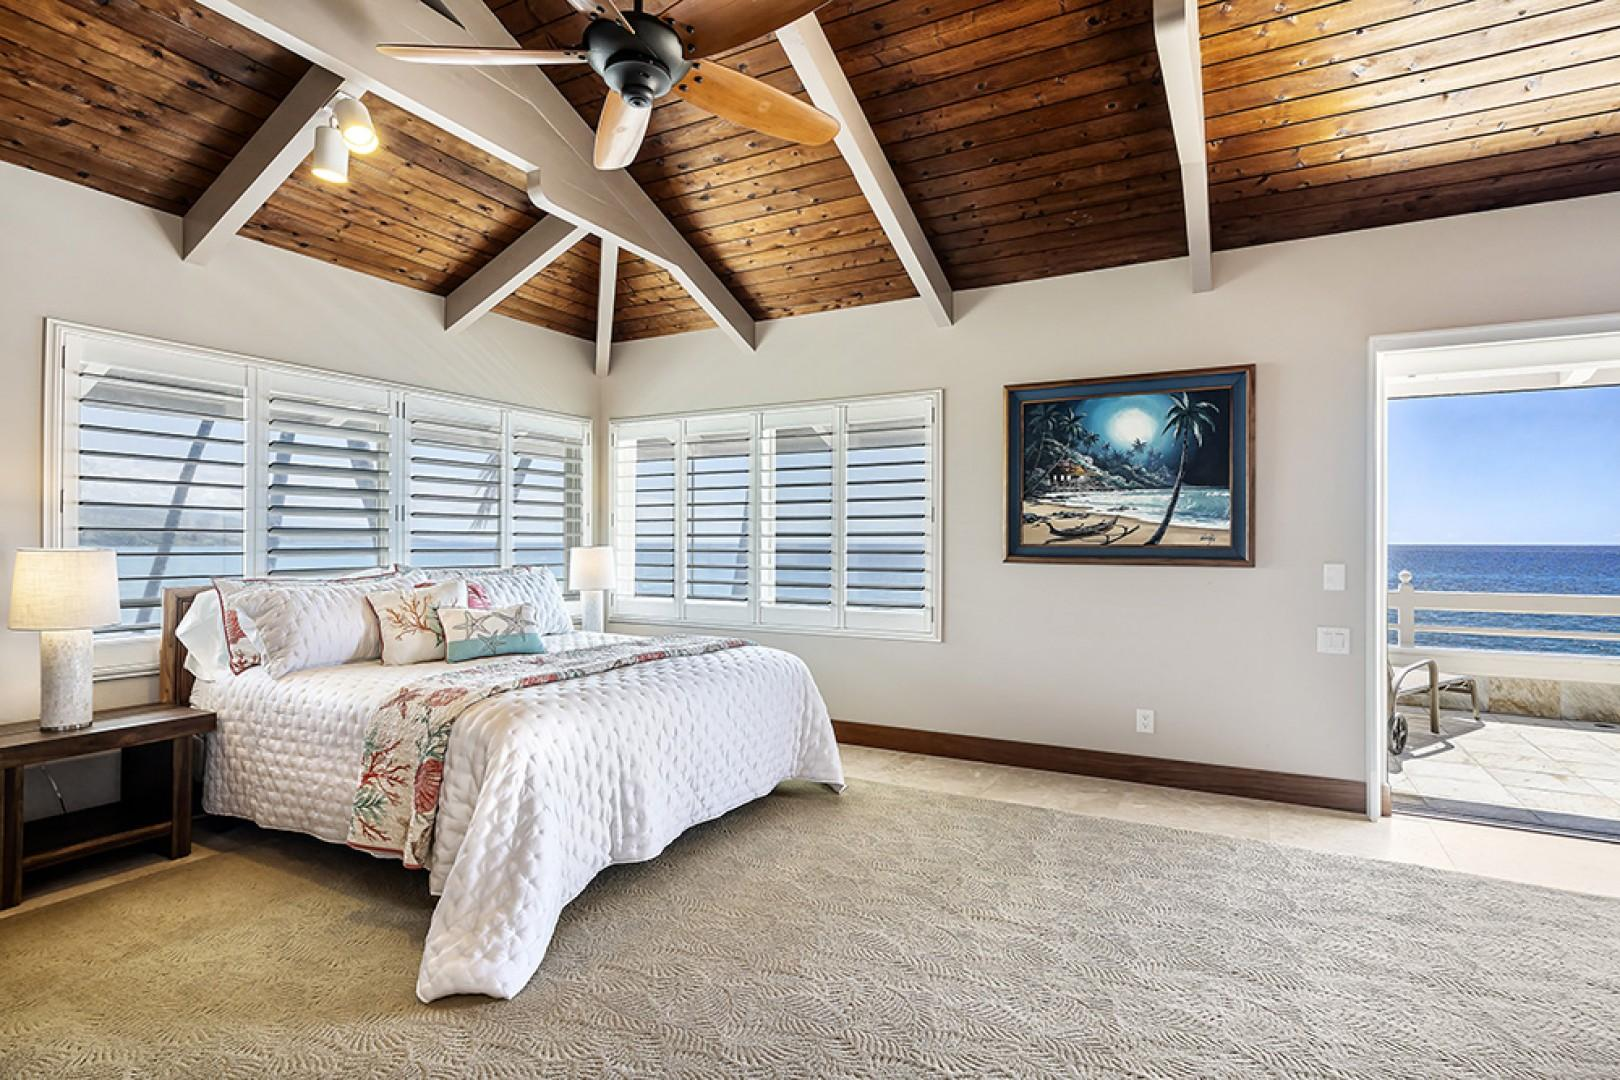 Grand Master bedroom with King sized bed, A/C, vaulted ceilings and private Lanai